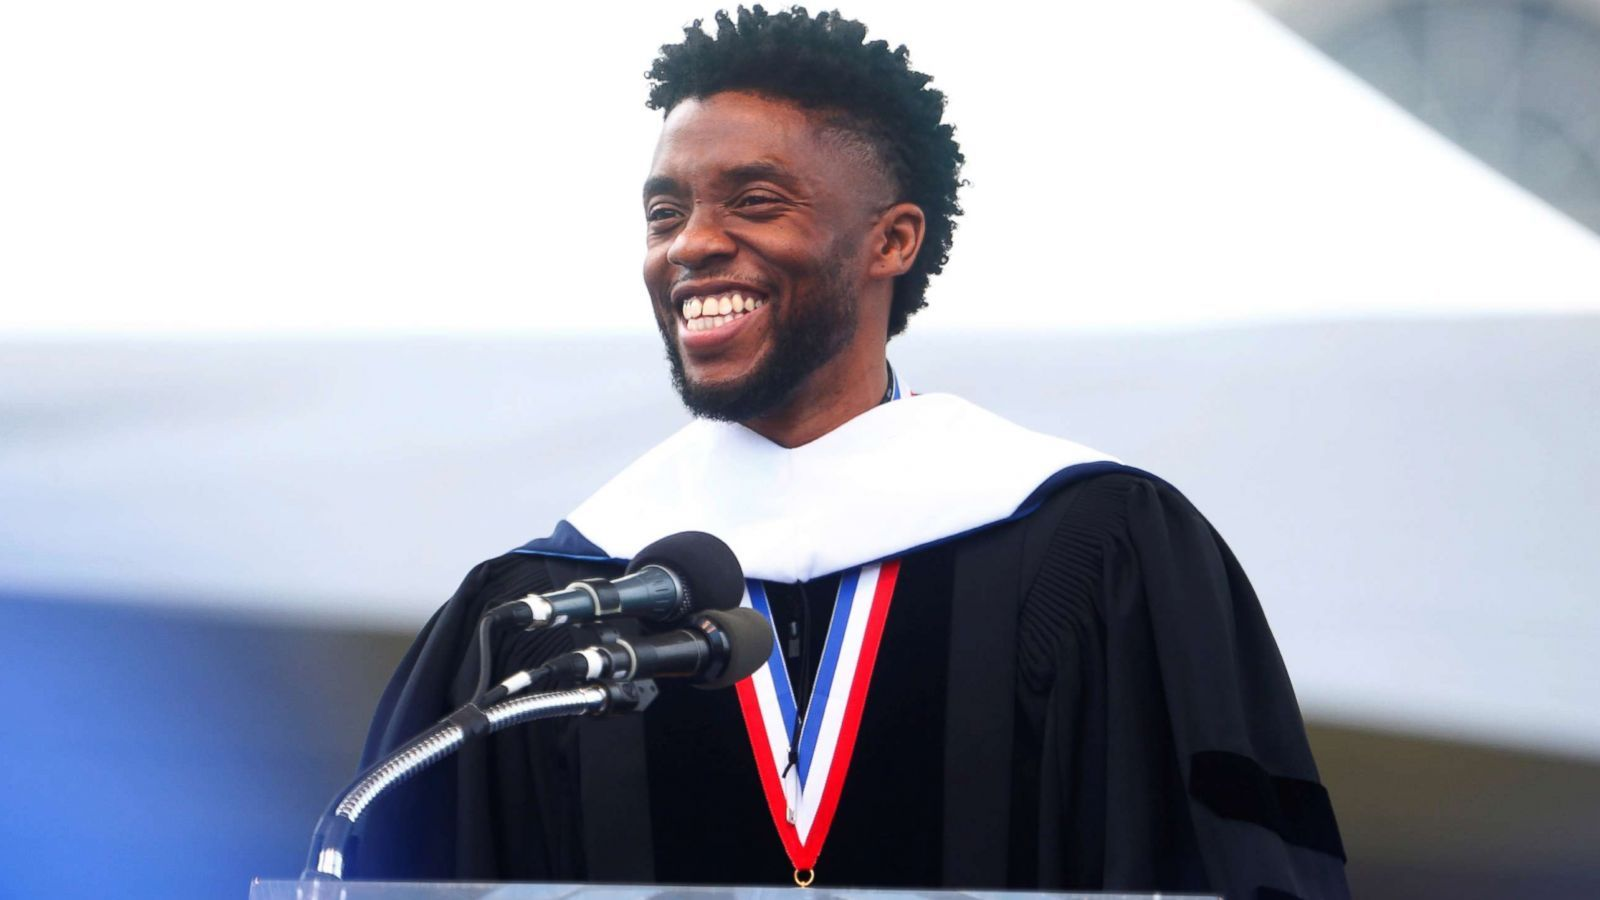 Inspirational Speakers Kick Off HBCU Graduation Season Blended 1600x900